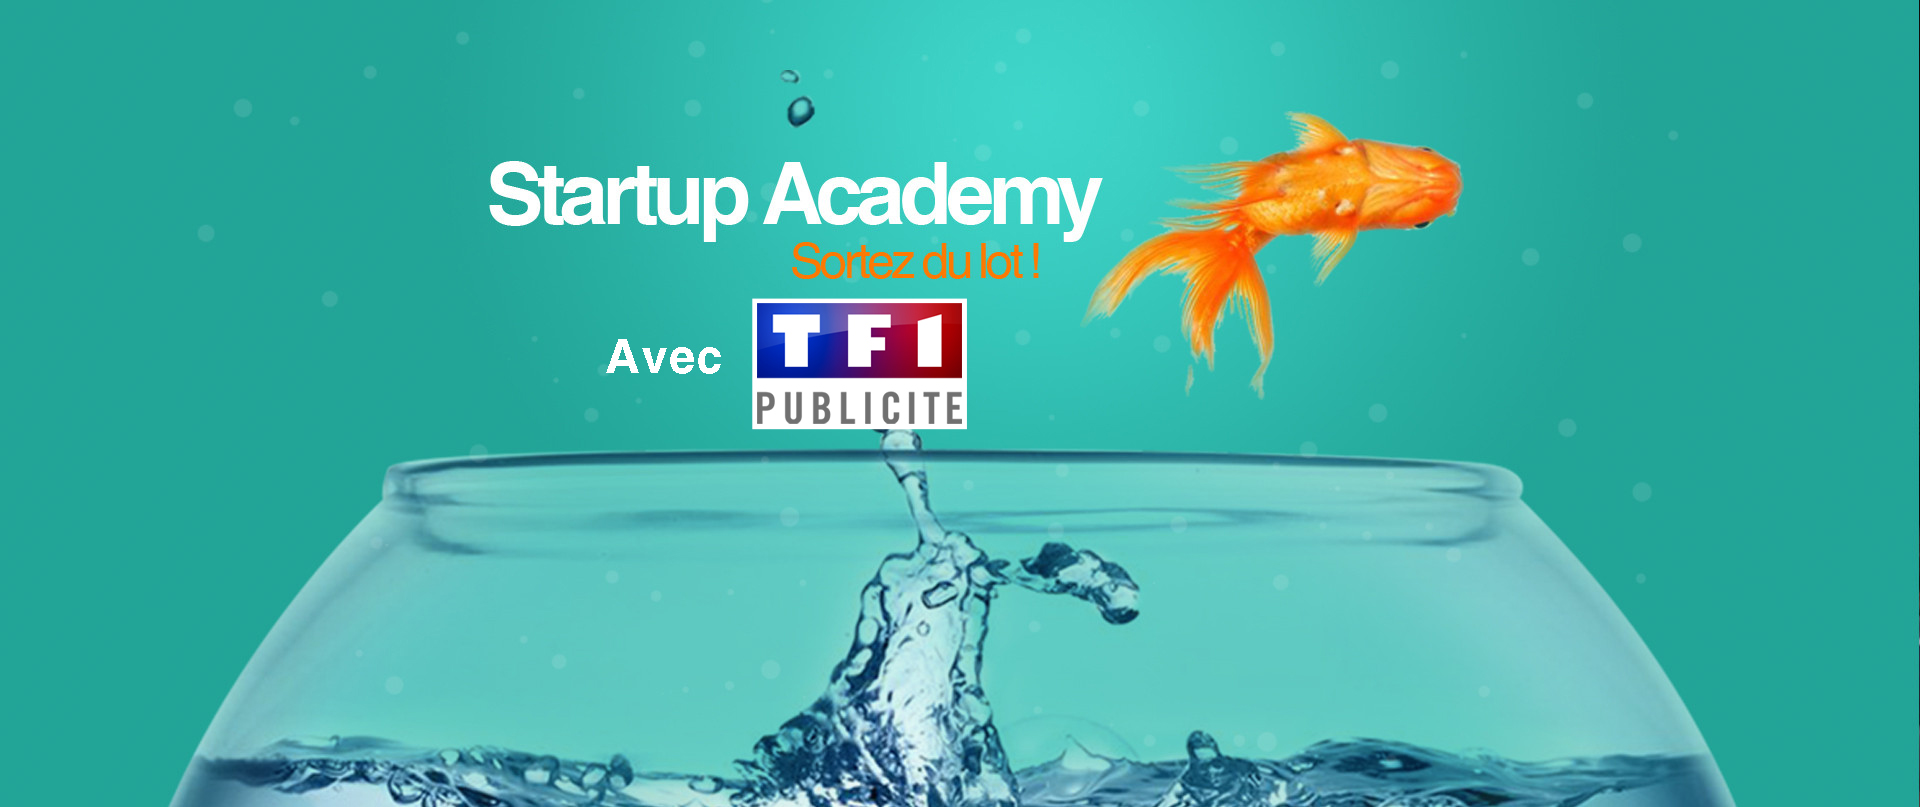 startupacademy-header-copie